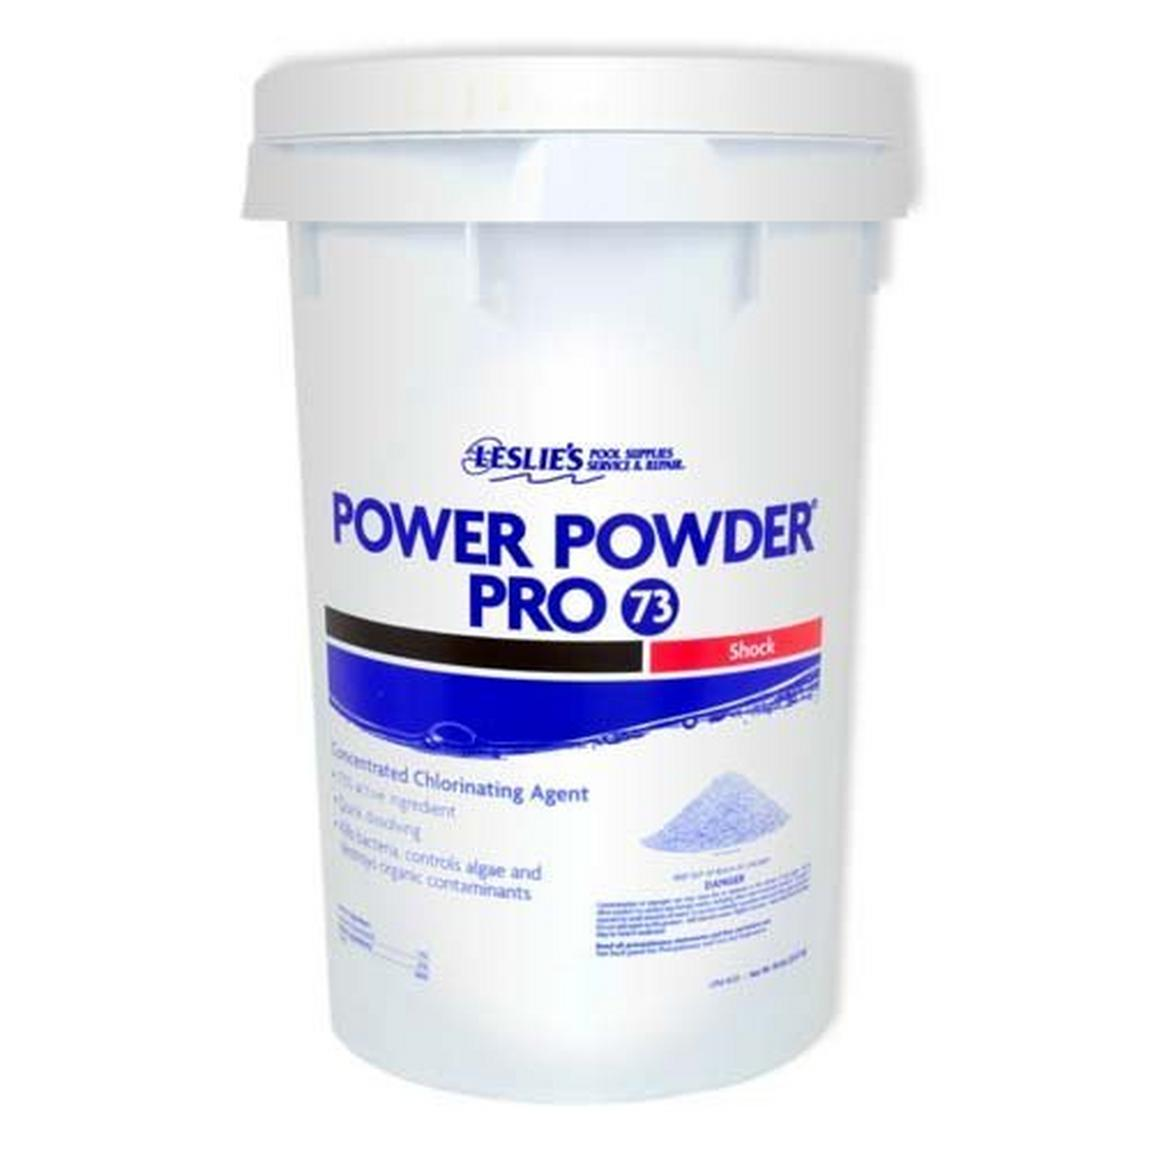 Power Powder Pro